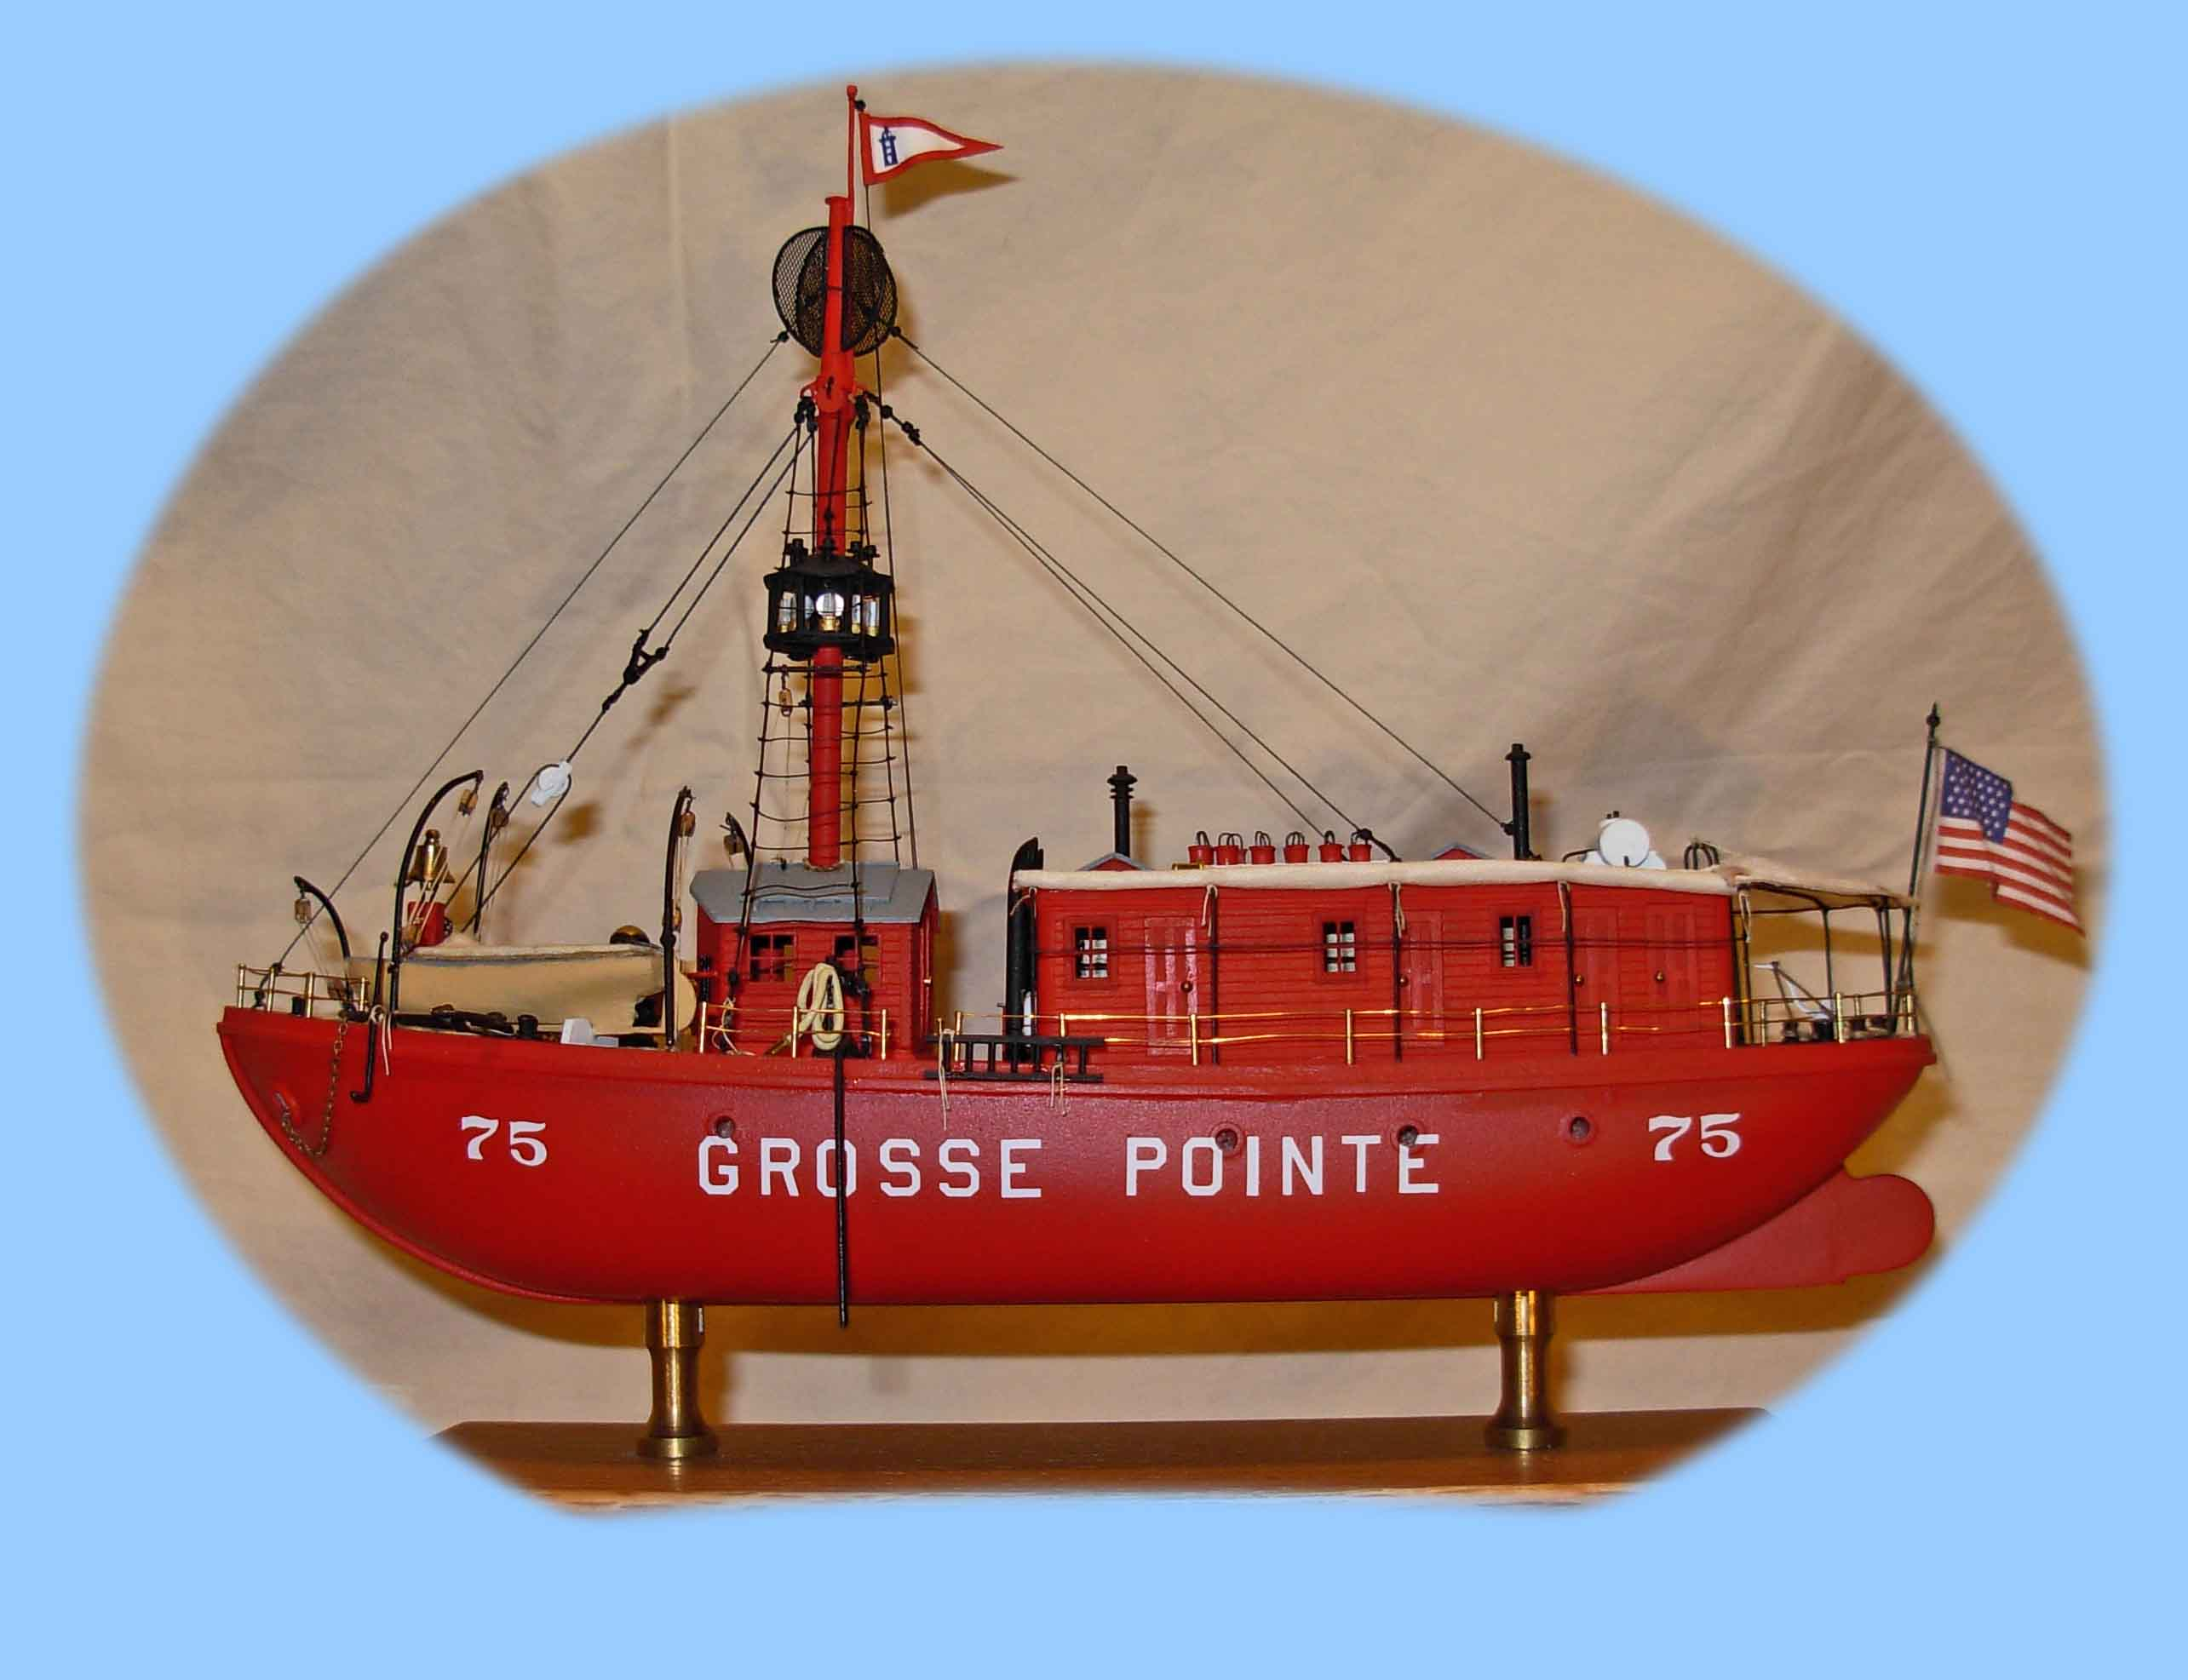 Light ship vessel number 75 as the Grosse Point